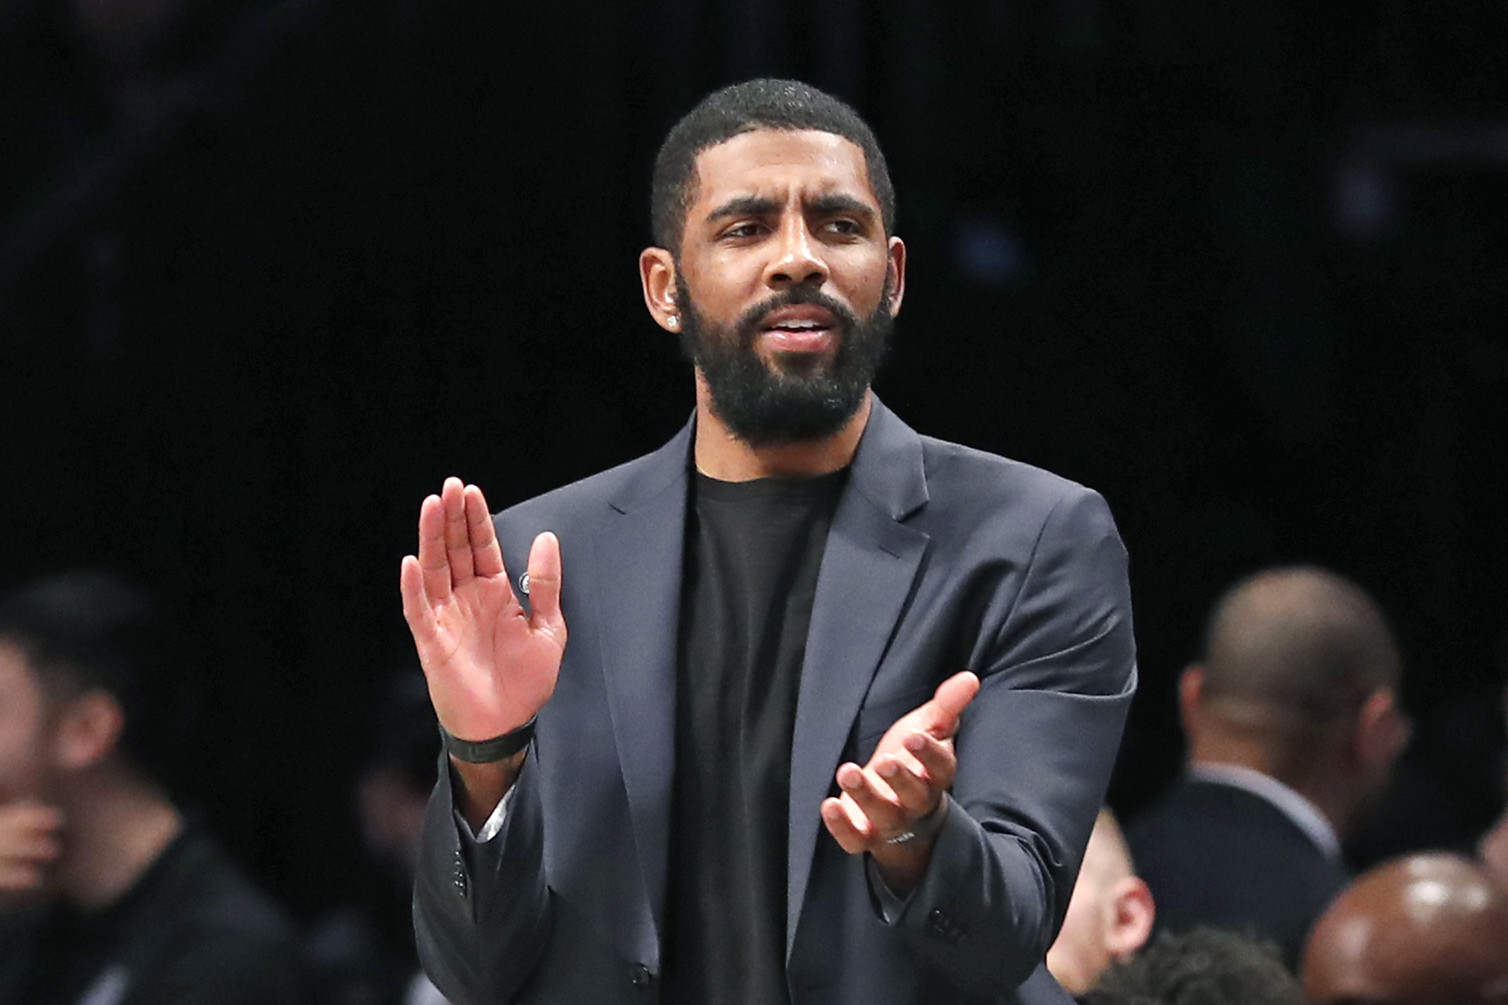 Kyrie Irving 'likely' to return to Nets lineup on Sunday vs. Hawks: report